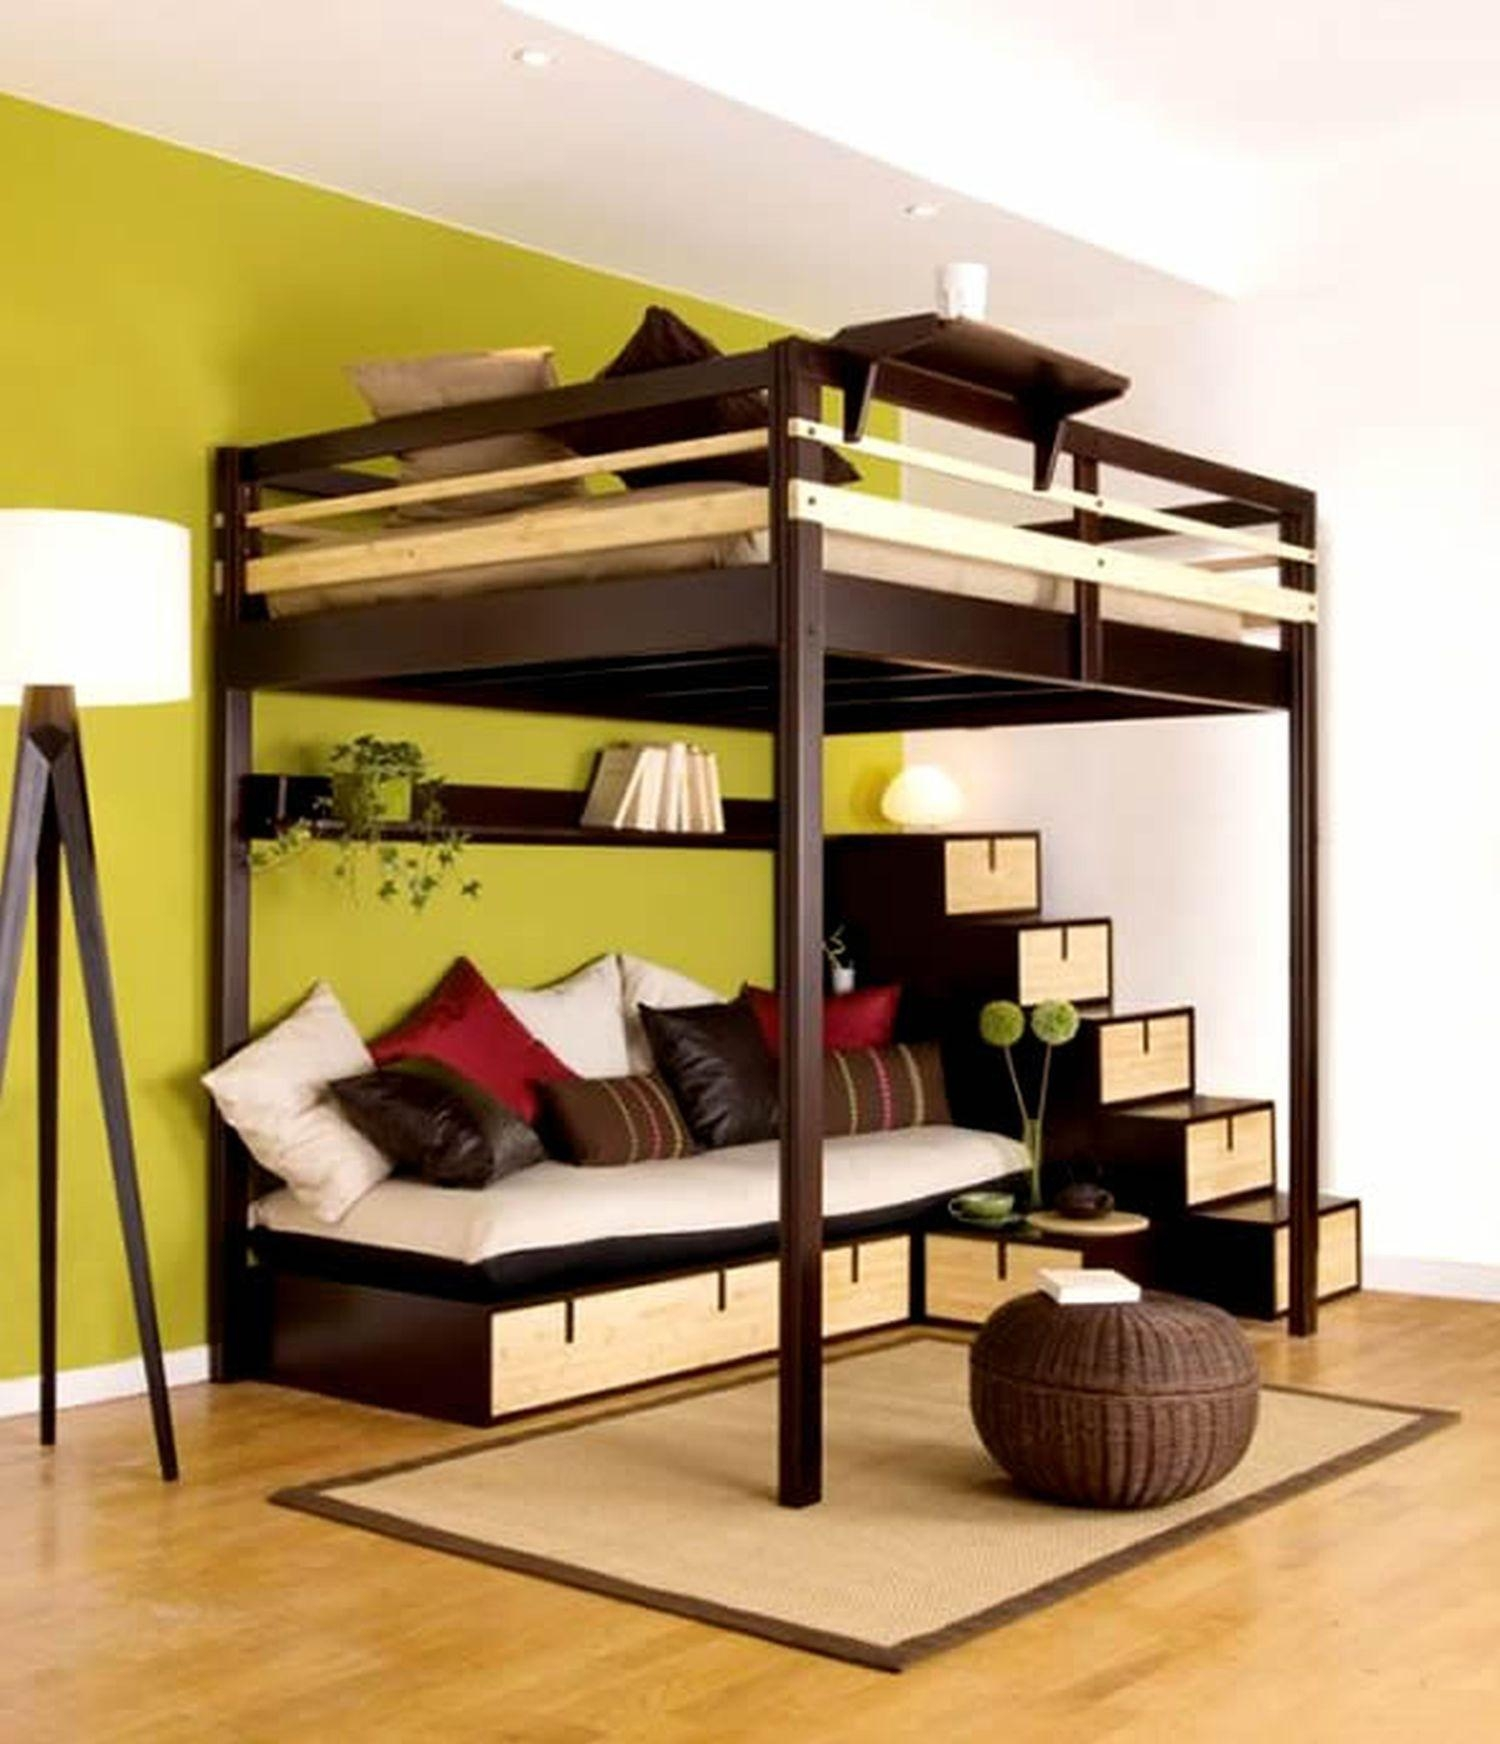 Bedding: Modern Cool Loft Bed With Desk And Couch Loft Bed With With Bunk Bed With Sofas Underneath (Image 5 of 20)